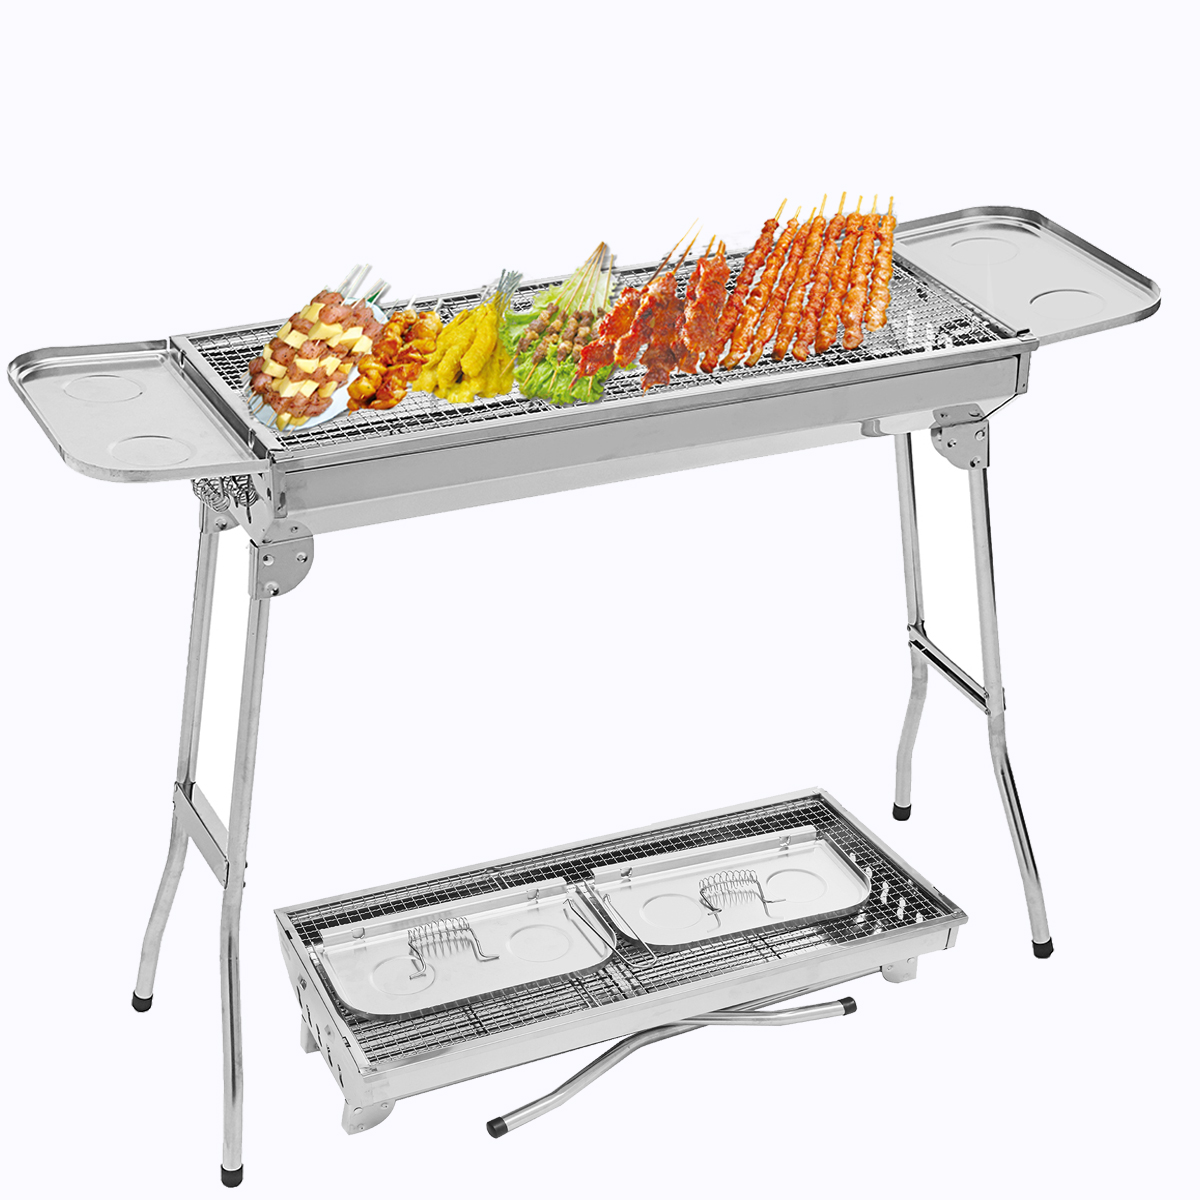 "43""x13""x27.5"" Foldable Barbecue Charcoal Grill Stove Shish Kabob Stainless Steel BBQ Patio Garden Camping"